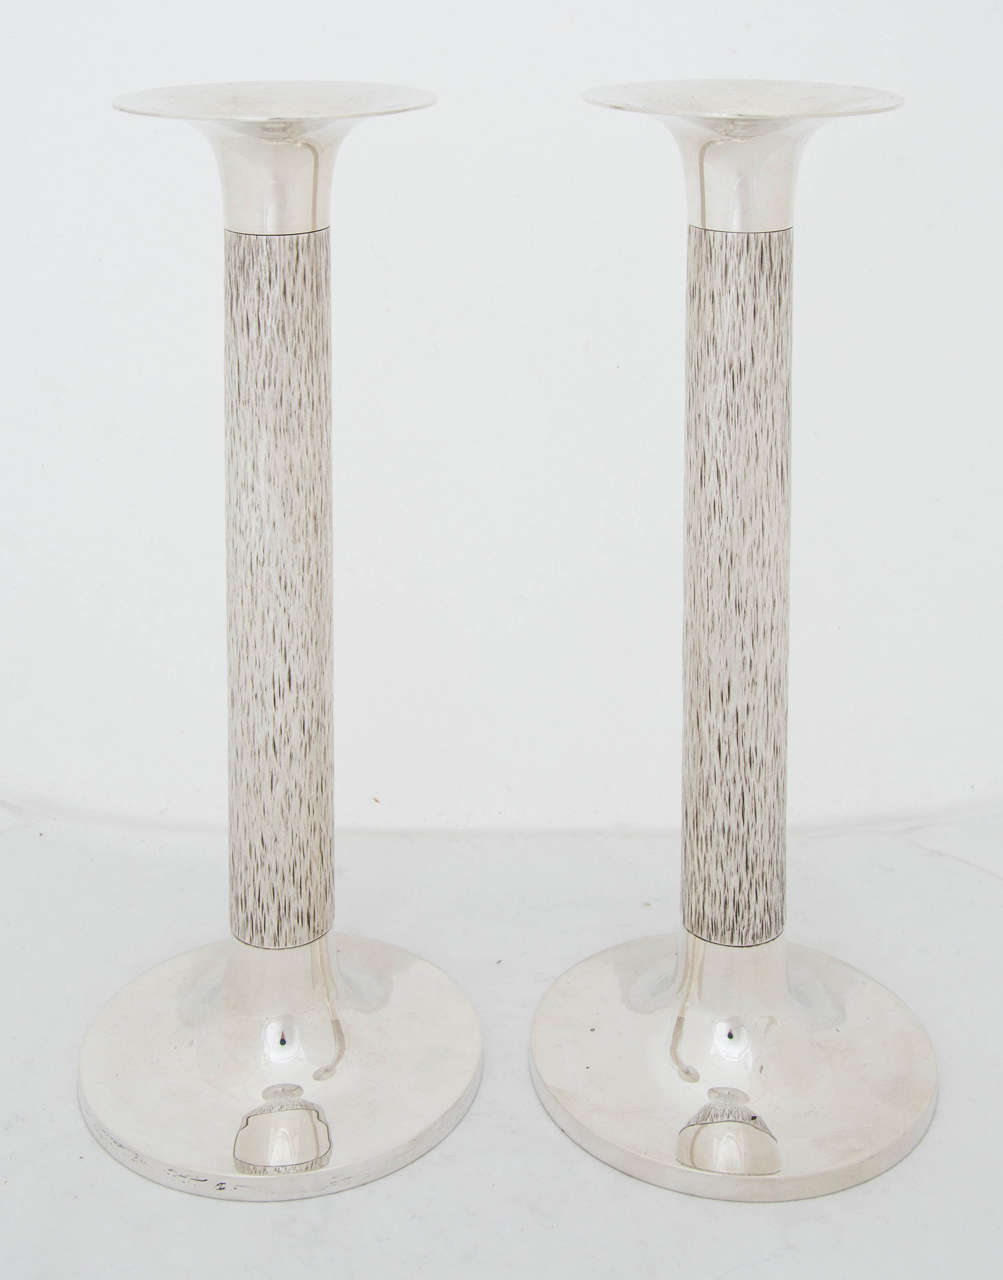 A pair of sterling silver candlesticks made by the celebrated silversmith and designer Gerald Benney in London, 1969.